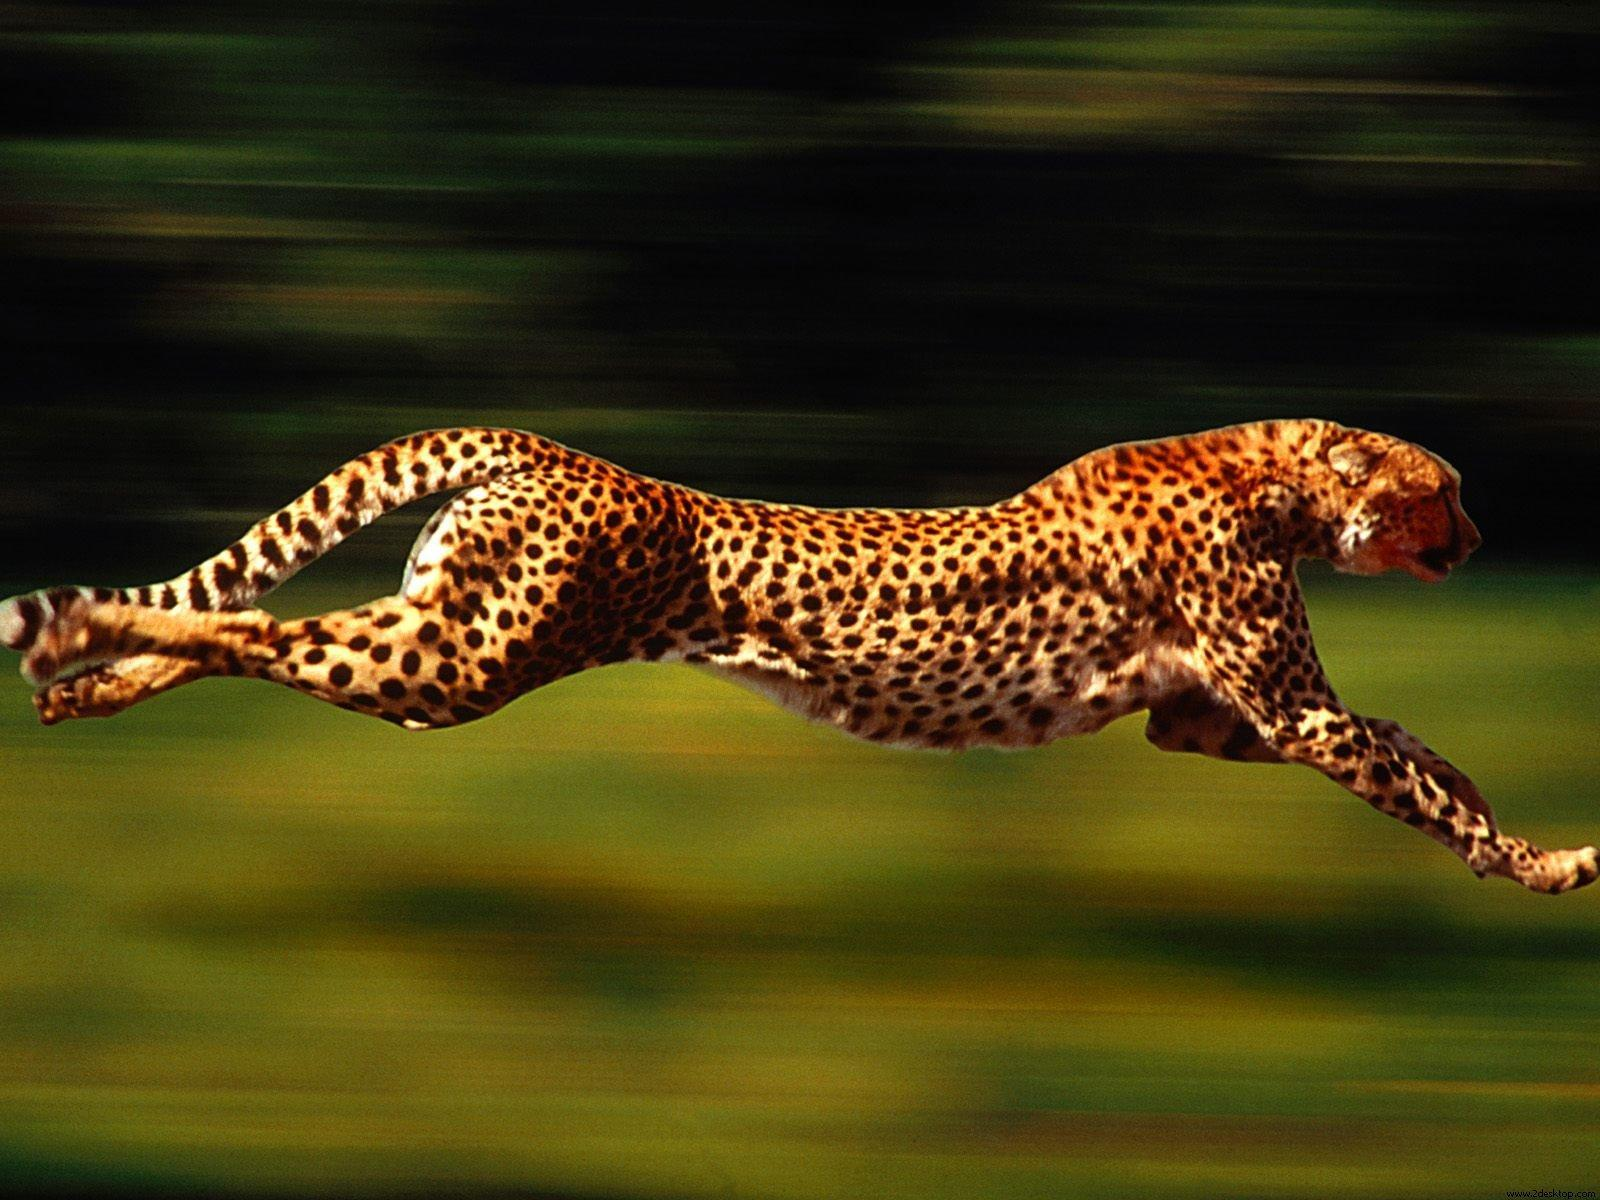 In this picture below how fast is this cheetah going?